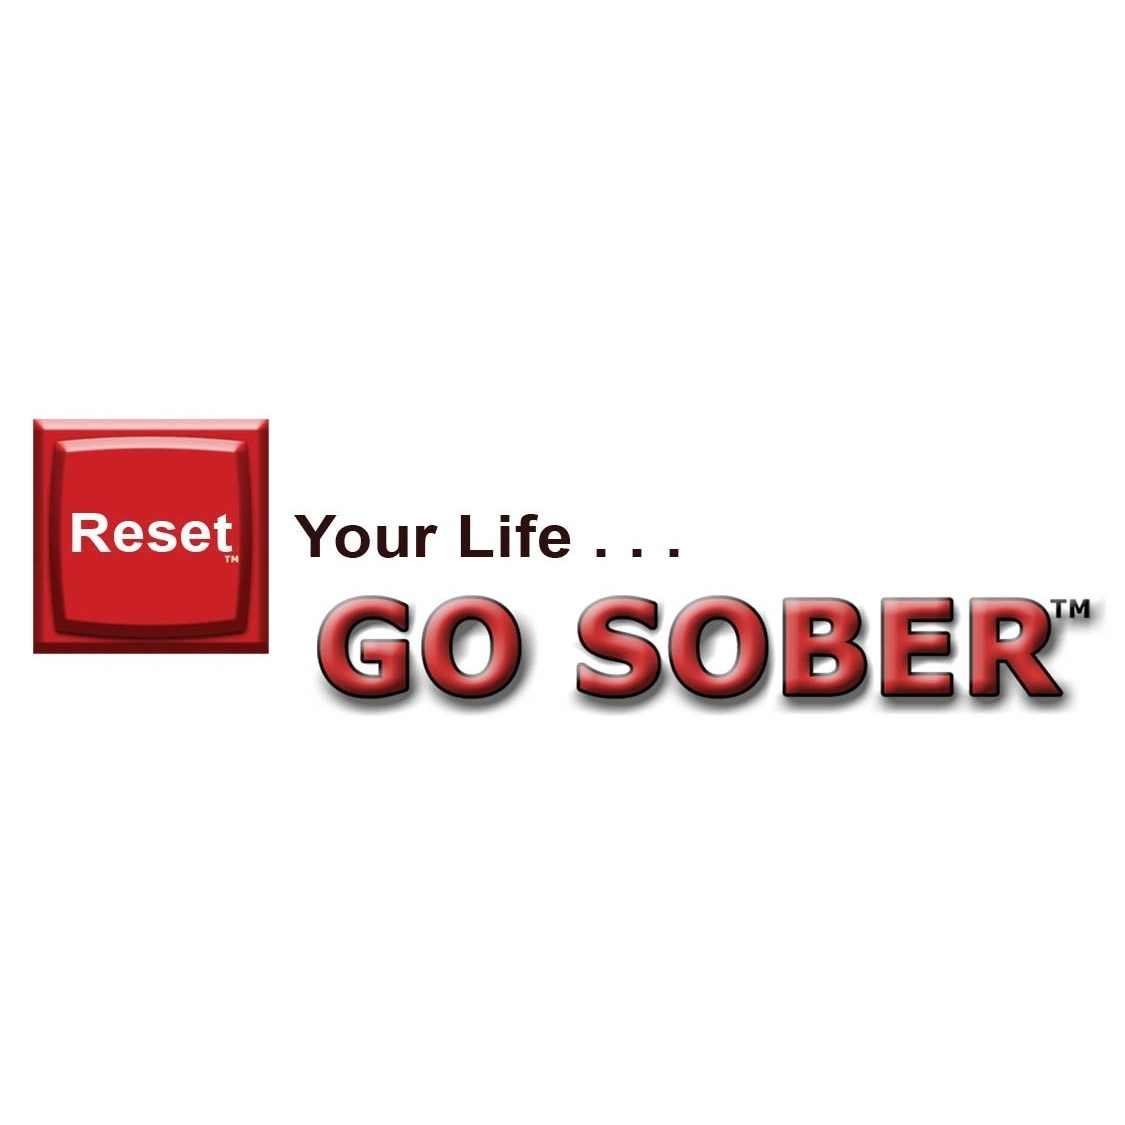 Go Sober - Centennial, CO 80112 - (303)770-0640 | ShowMeLocal.com